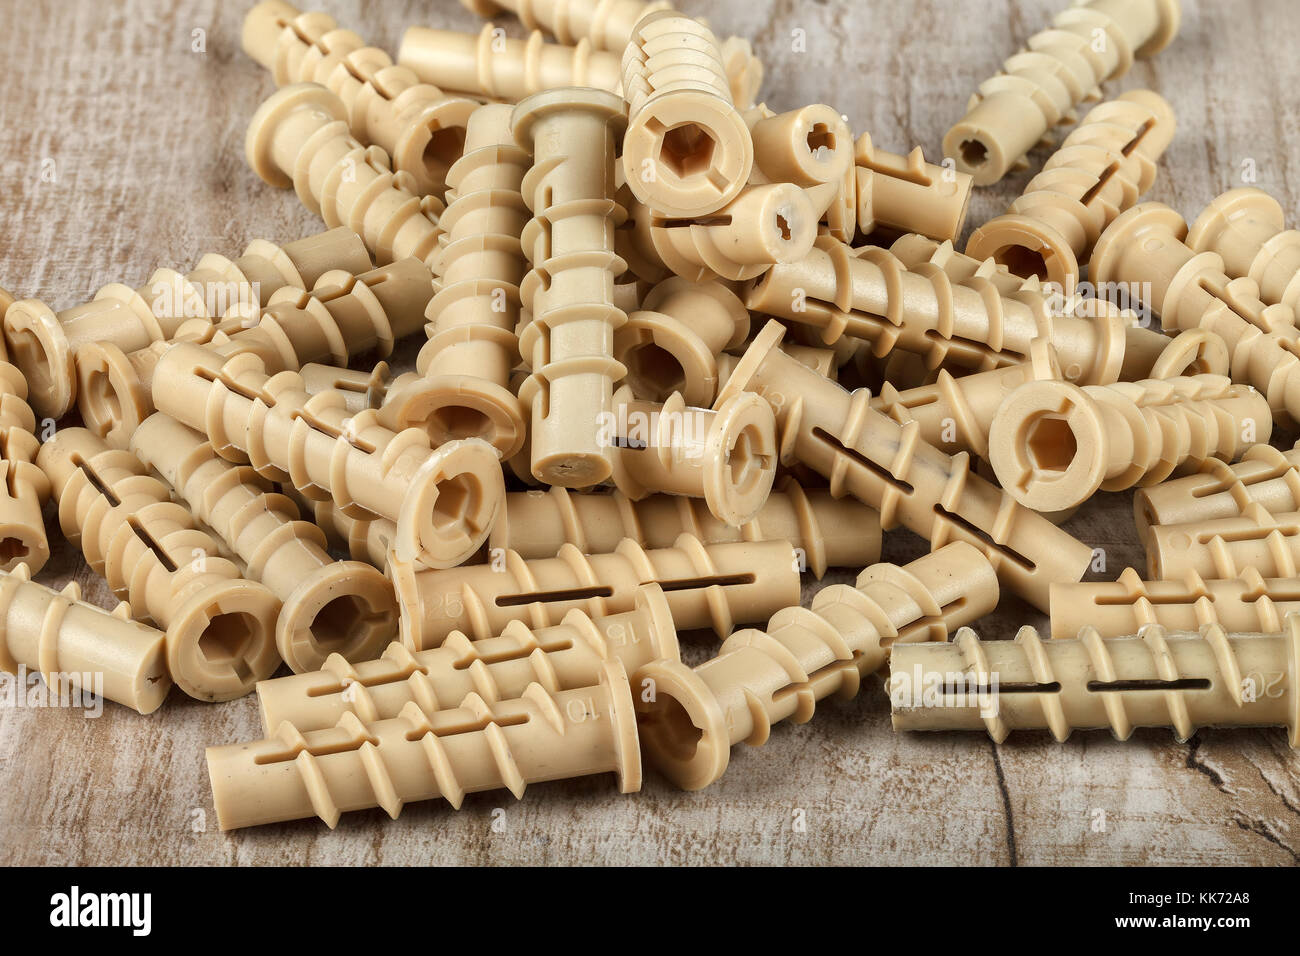 Plastic dowel for mounting on a wooden table. Close-up. Studio lighting. - Stock Image